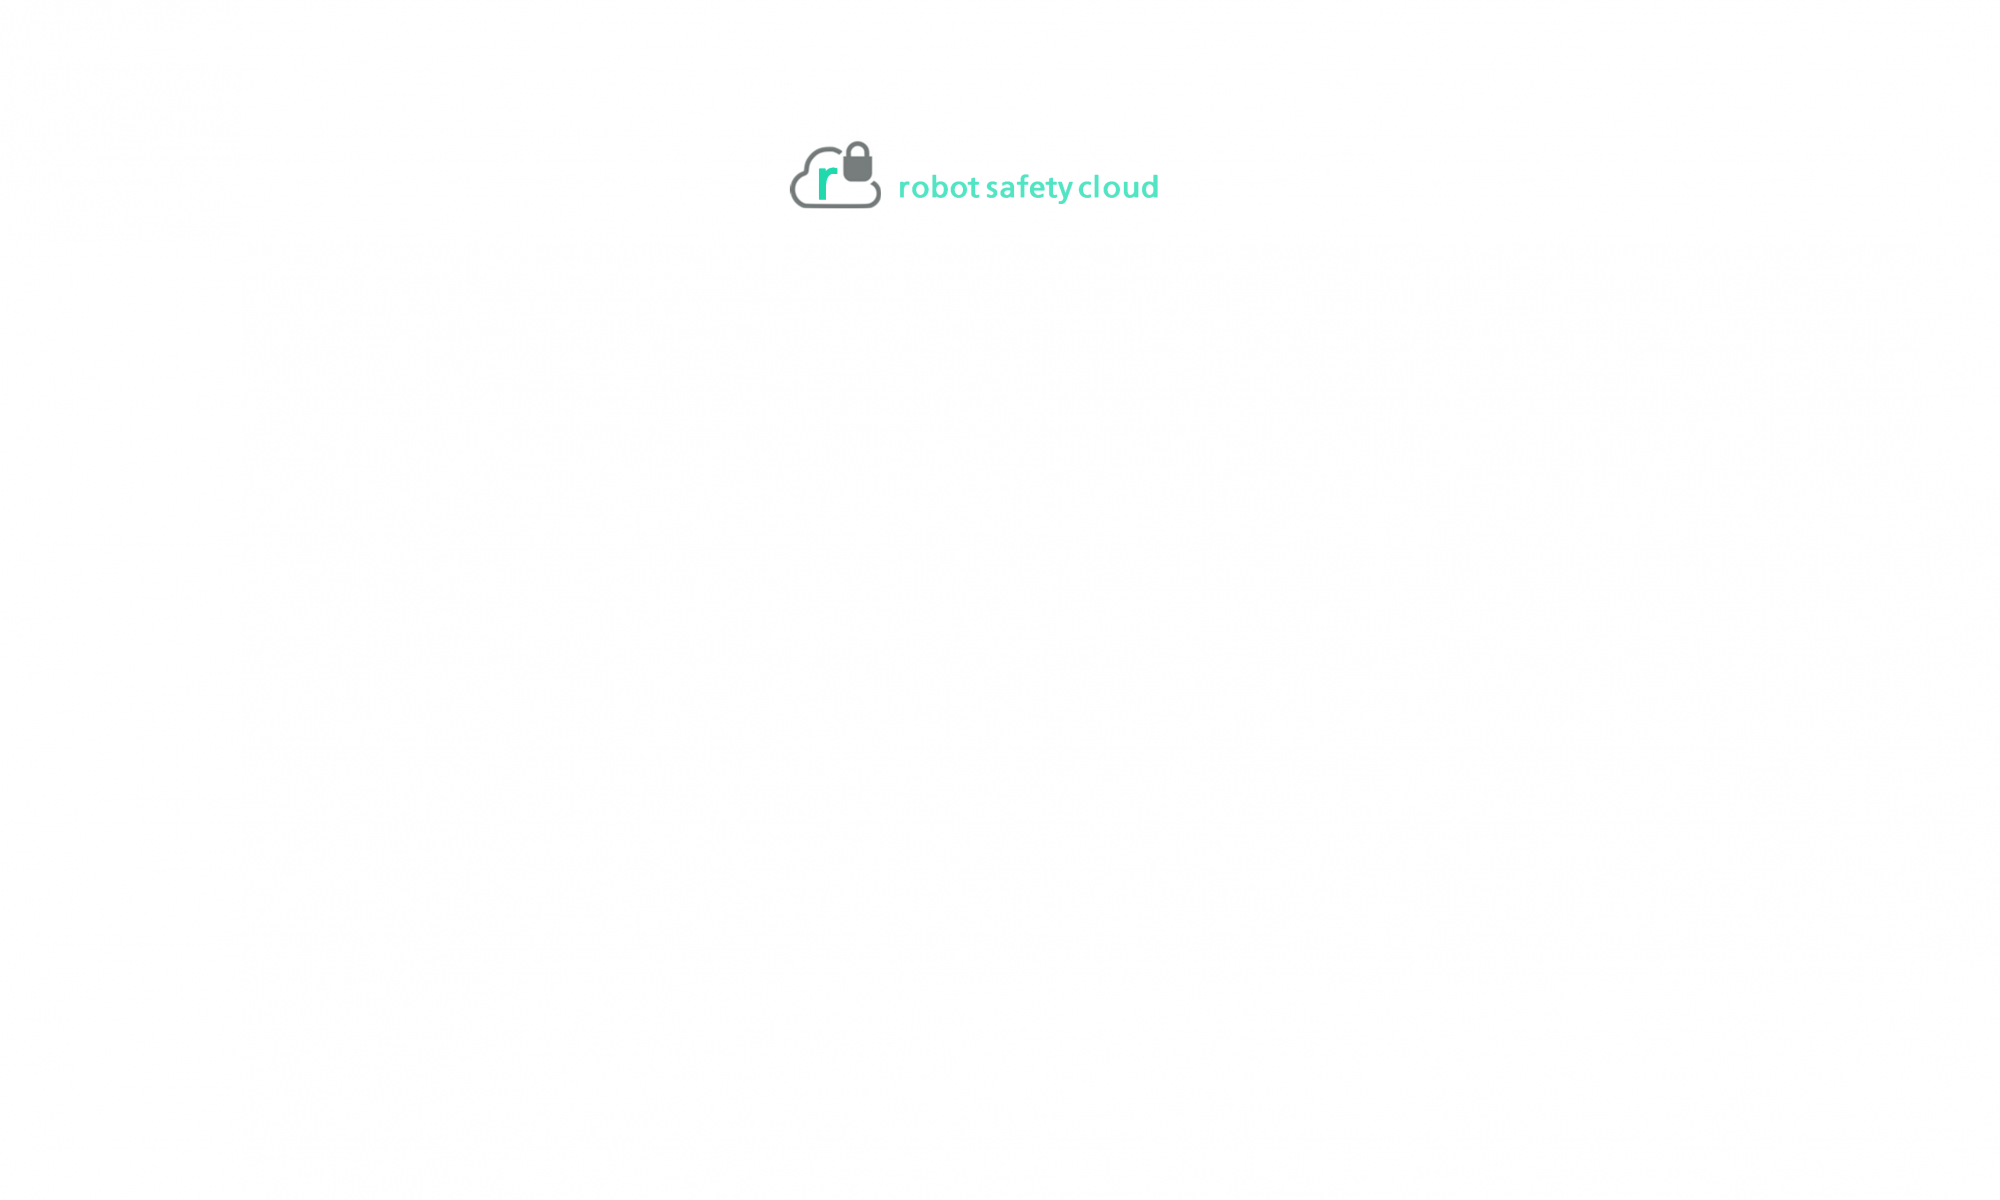 robot safety cloud